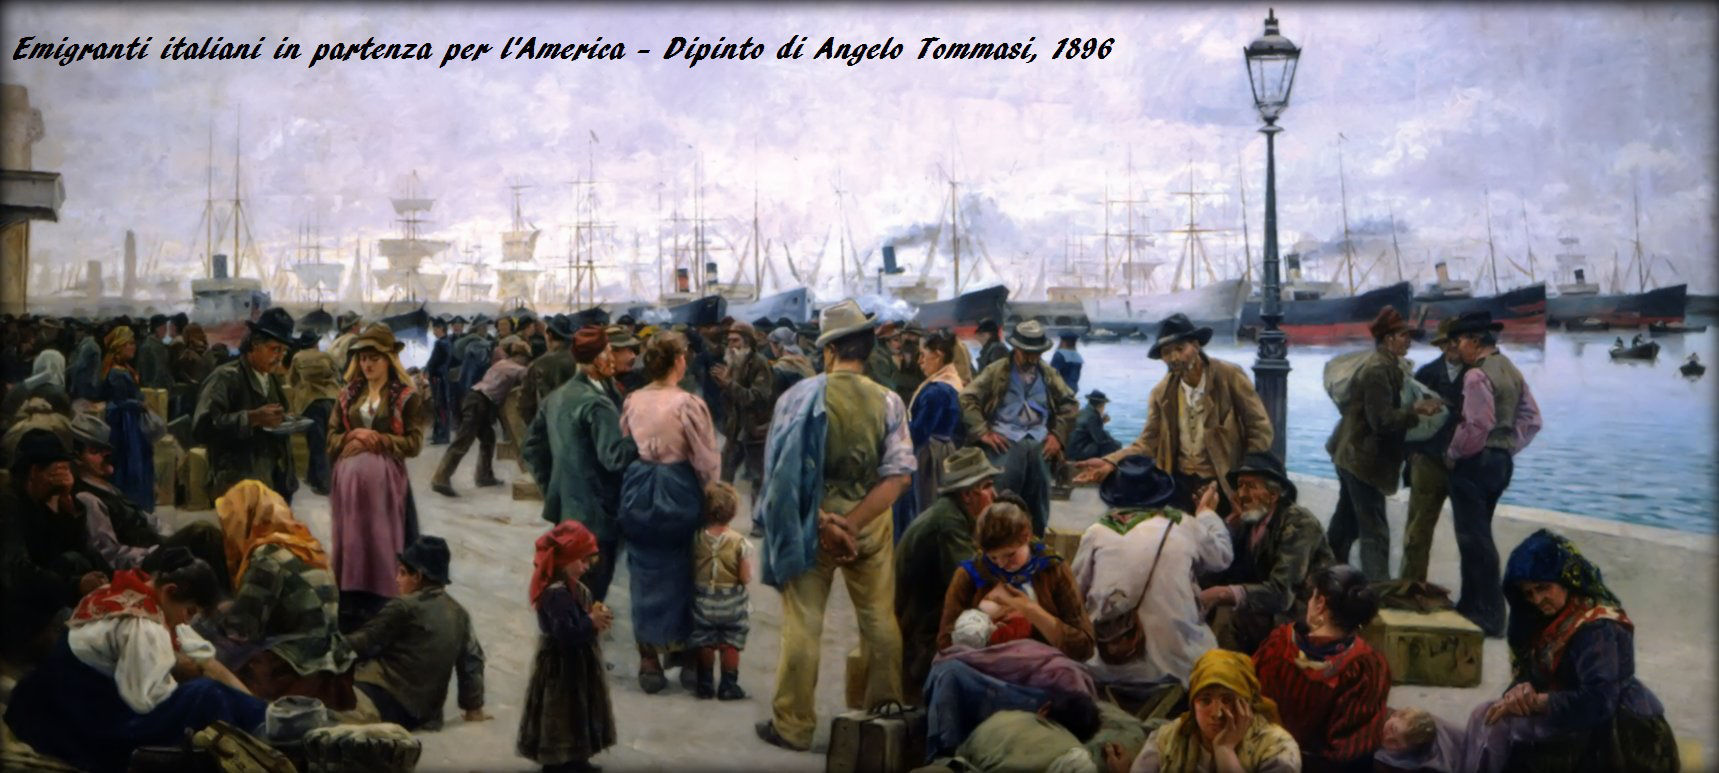 migrants_america_painting_1806